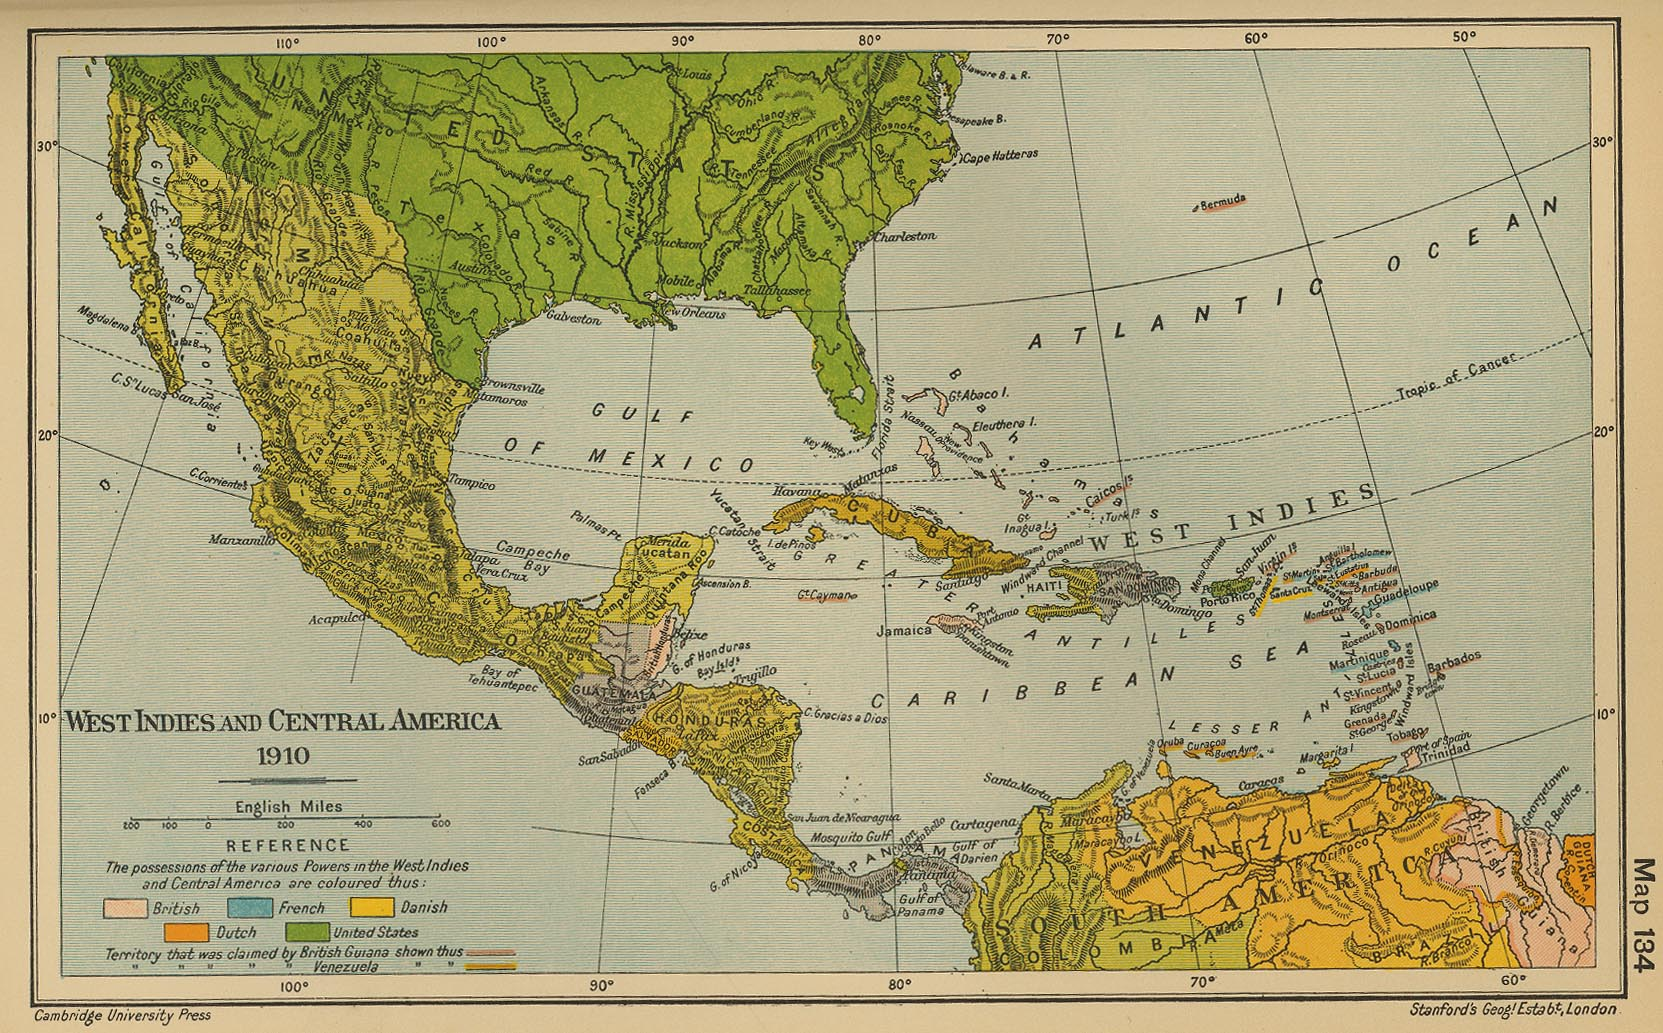 of the West Indies and Central America 1910